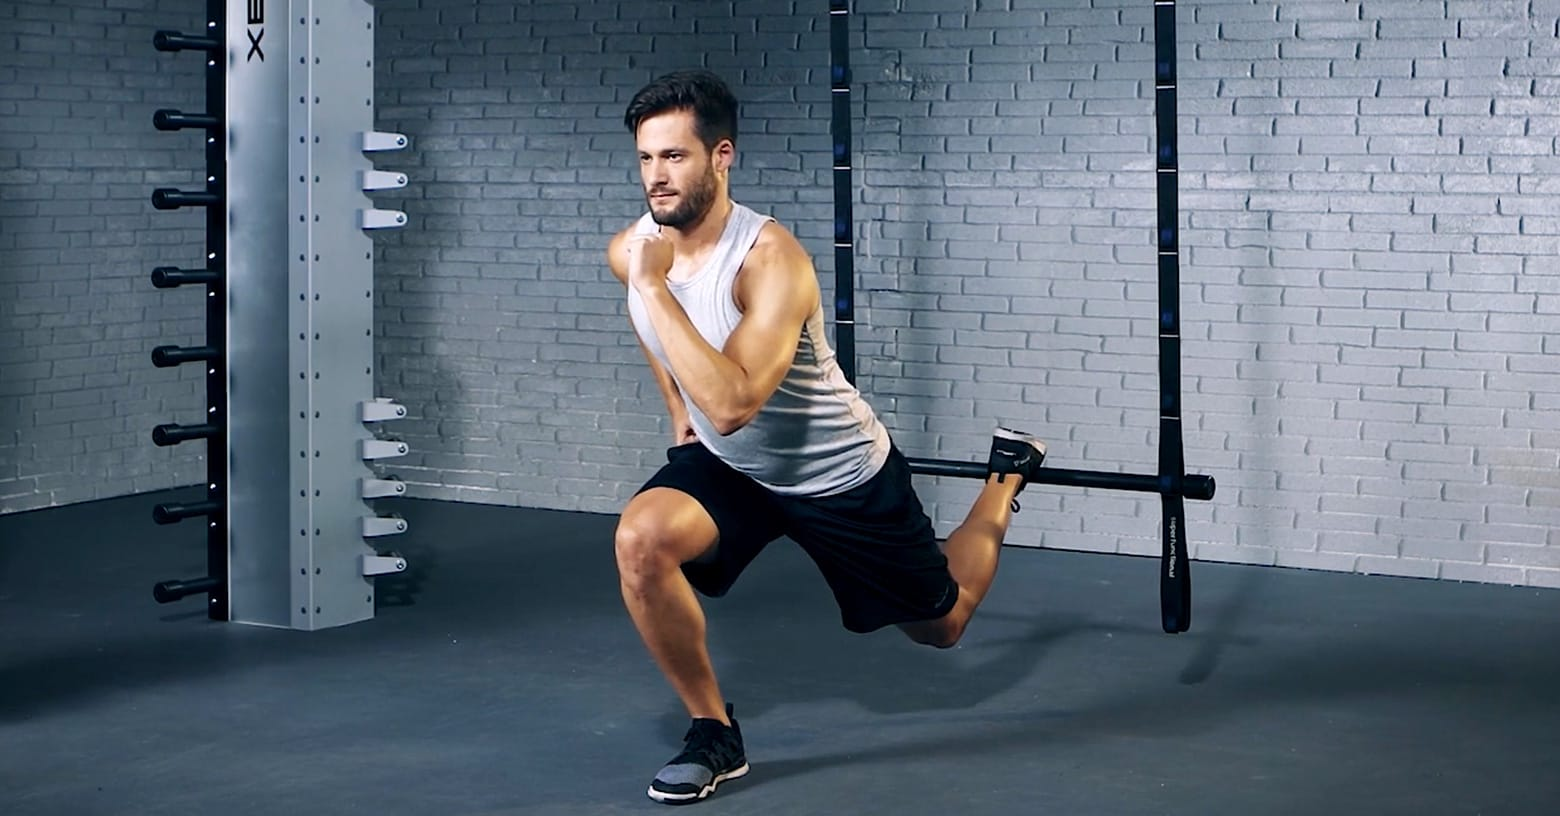 suspended lunge - Fente suspendue - Suspended Lunge - EVO Fitness